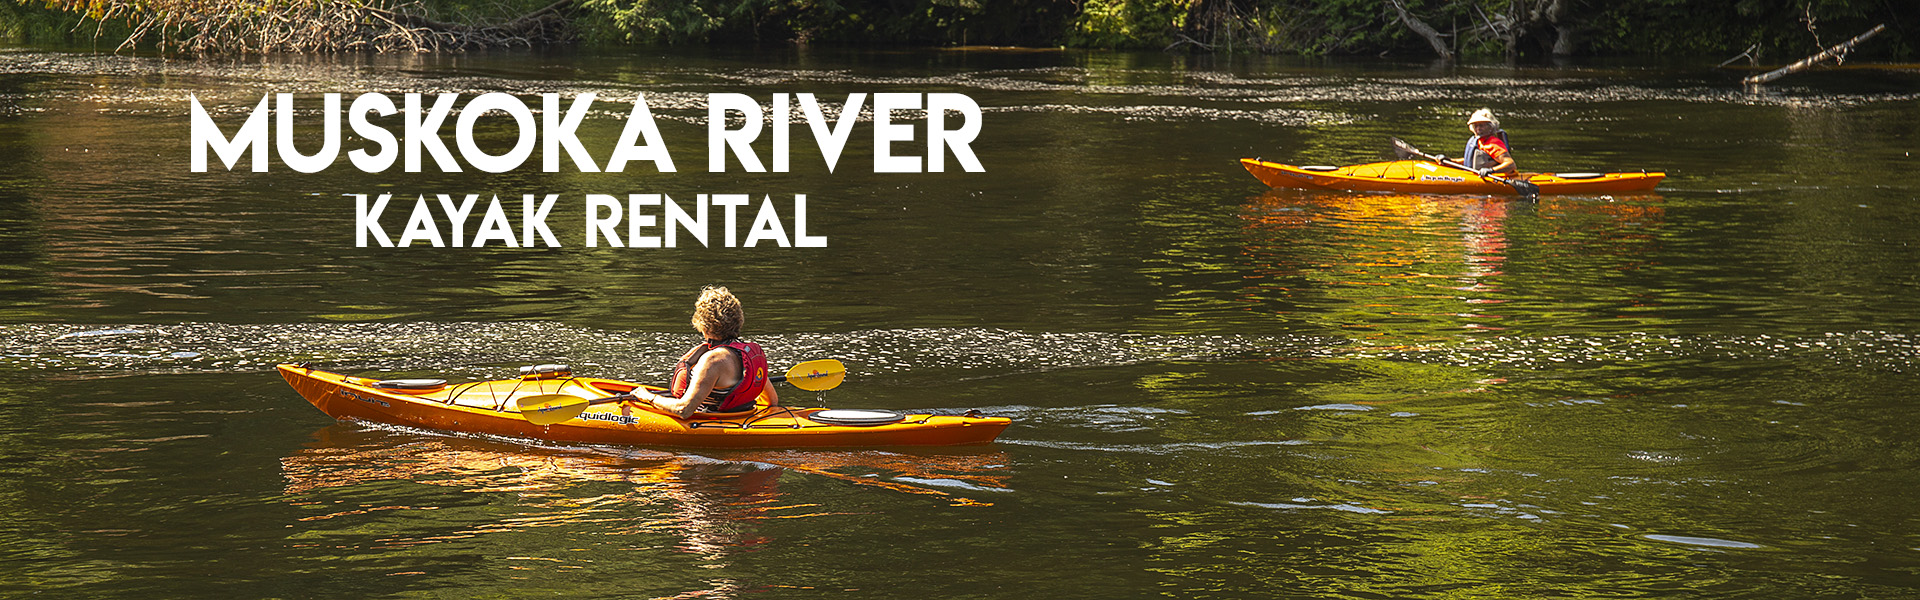 Muskoka River Kayak Rental